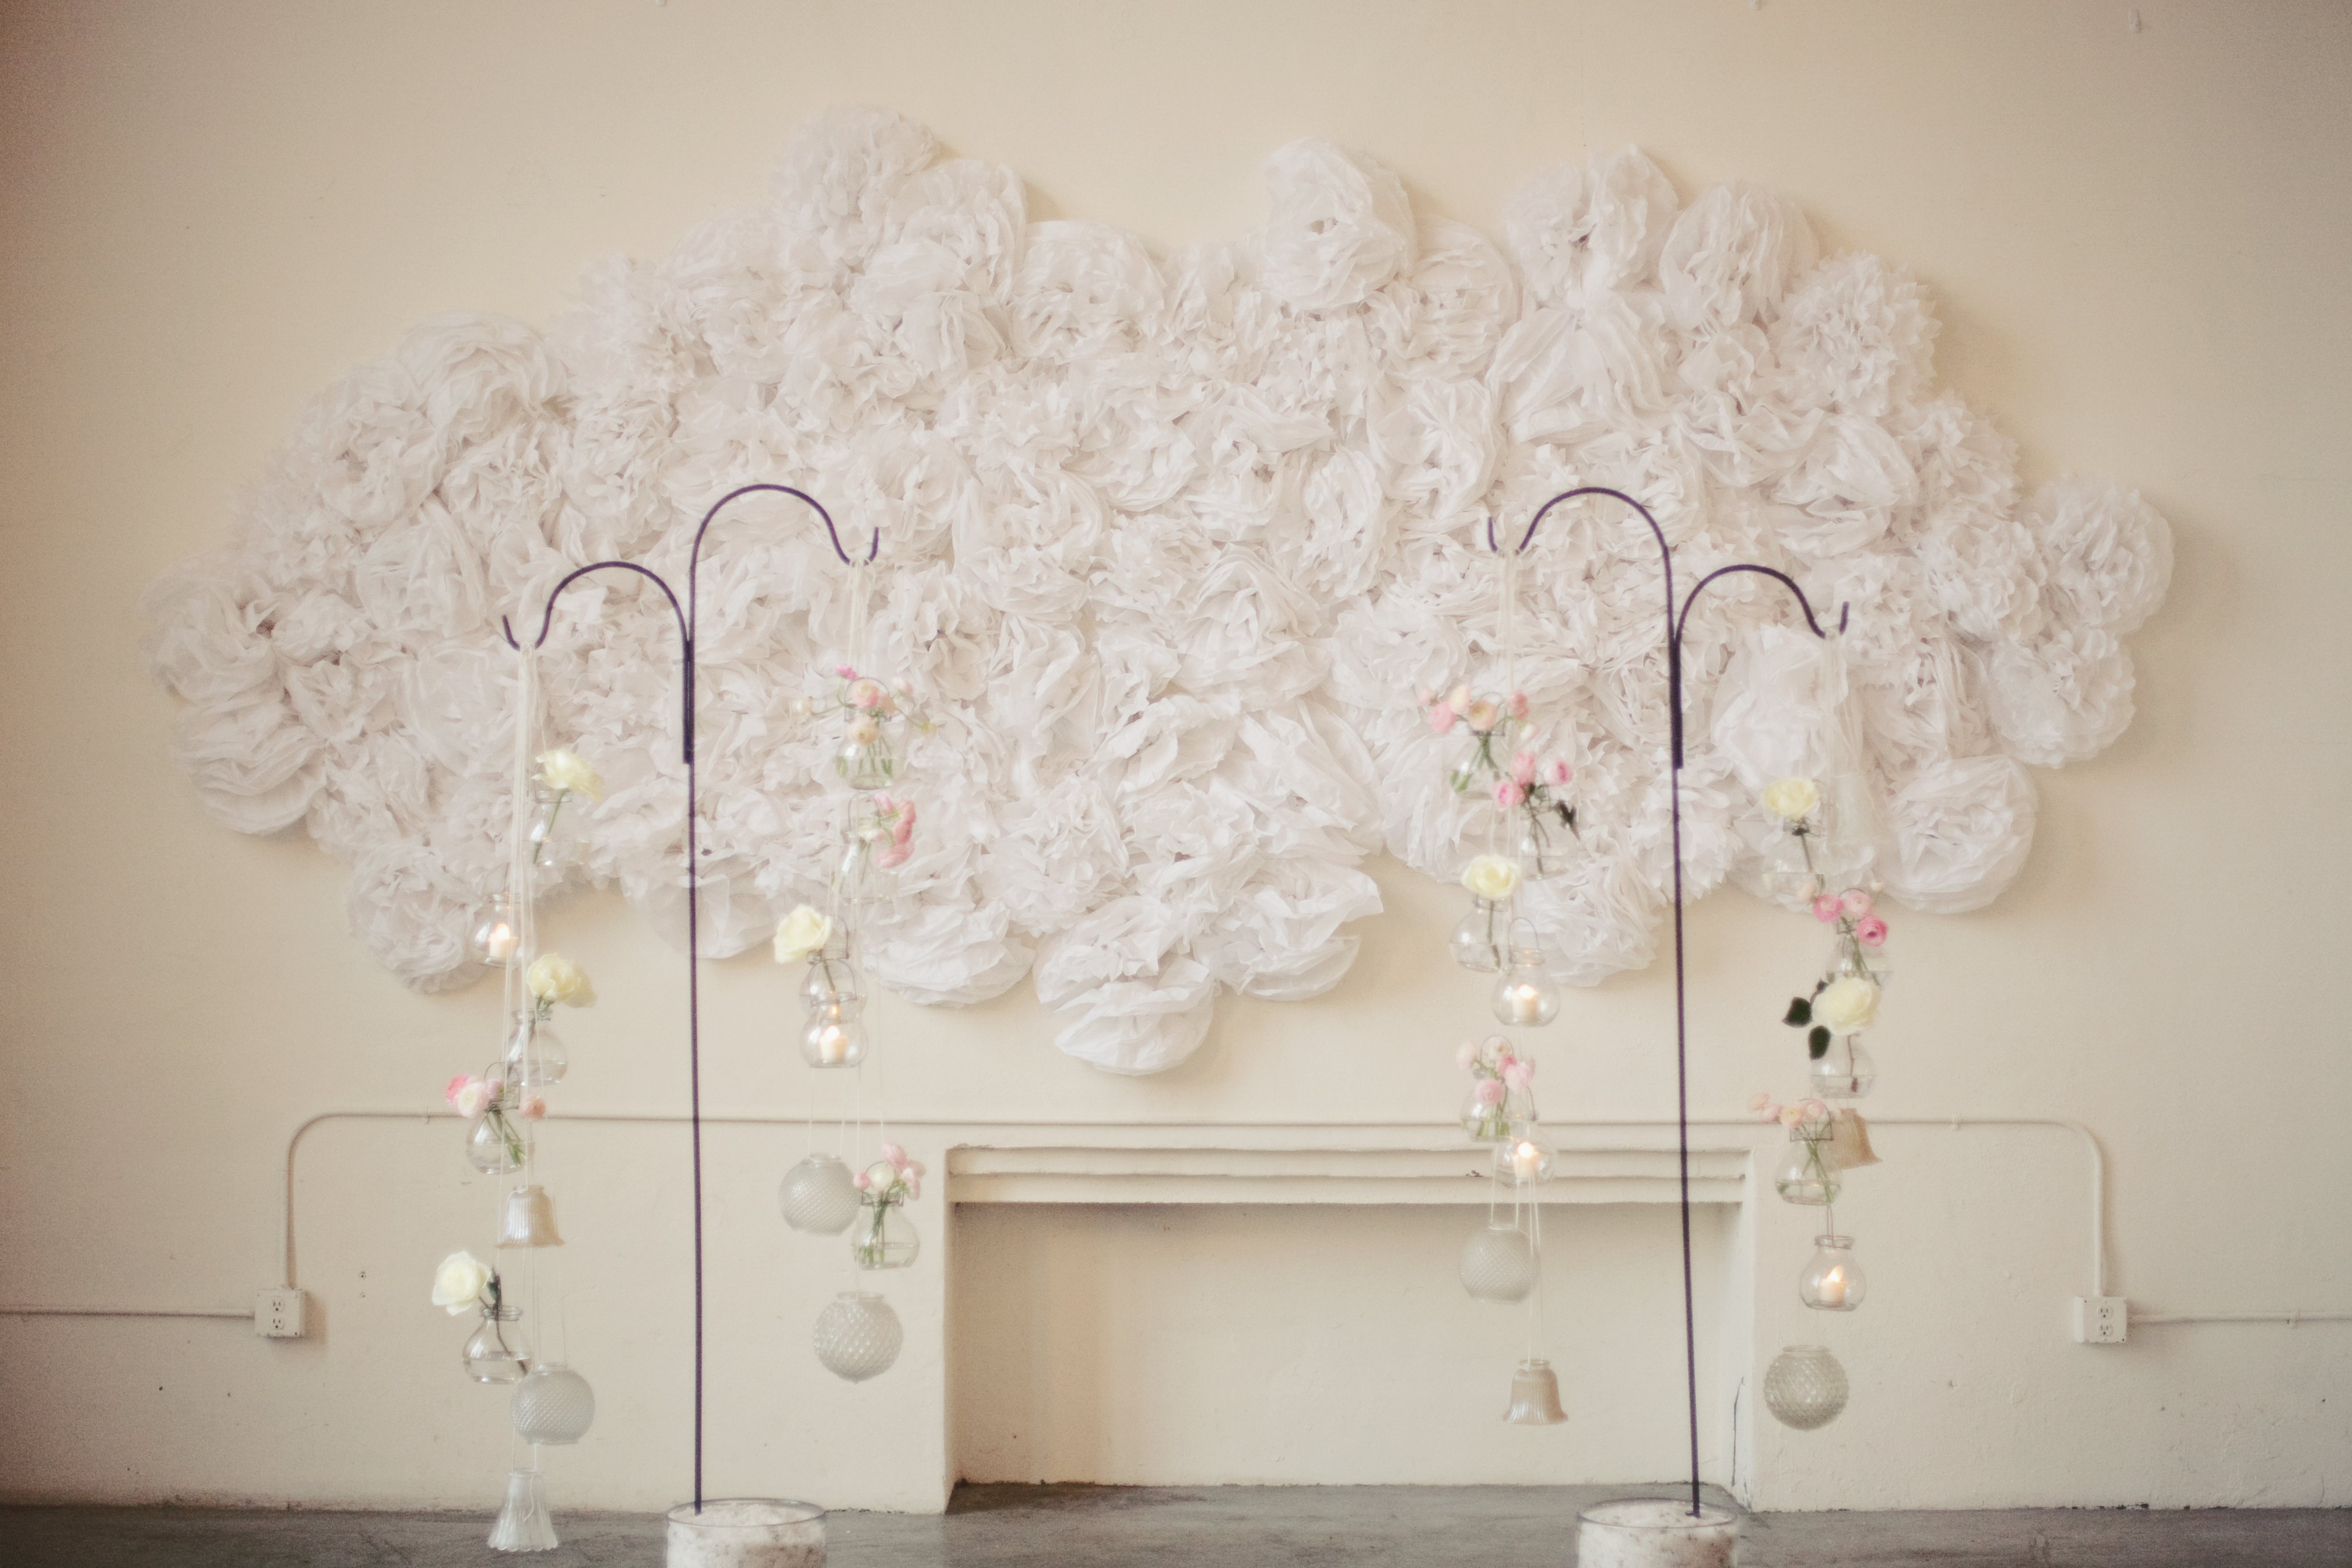 Andrea aaron tie the knot part two stacy mccain event Images of wall decoration